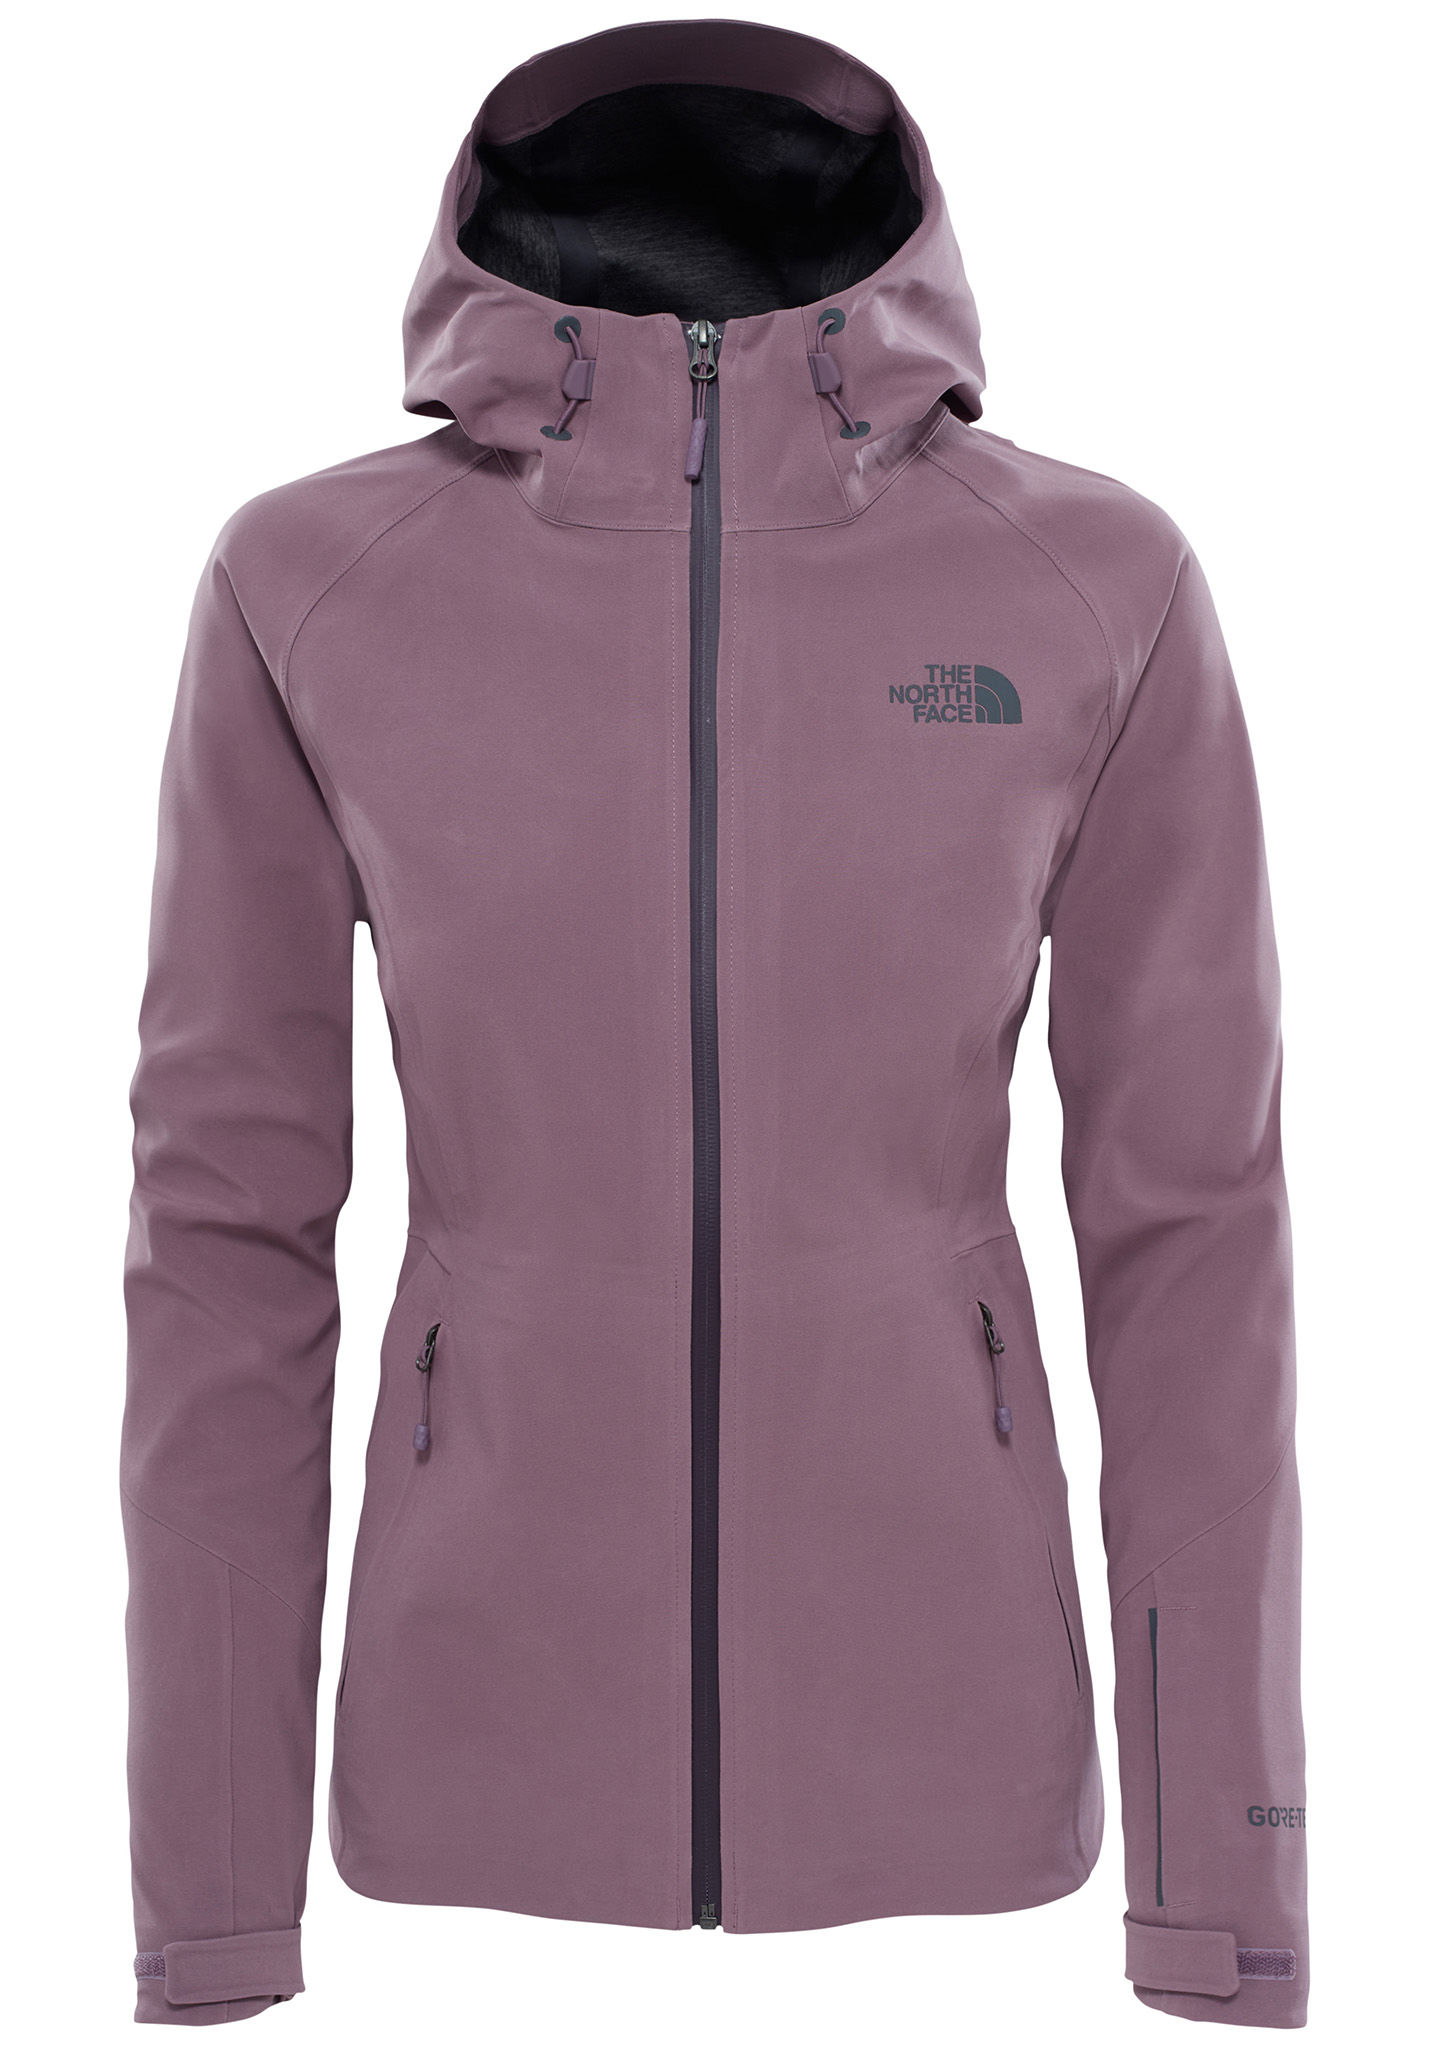 d9ea3dffd THE NORTH FACE Apex Flex GTX - Functional Jacket for Women - Purple